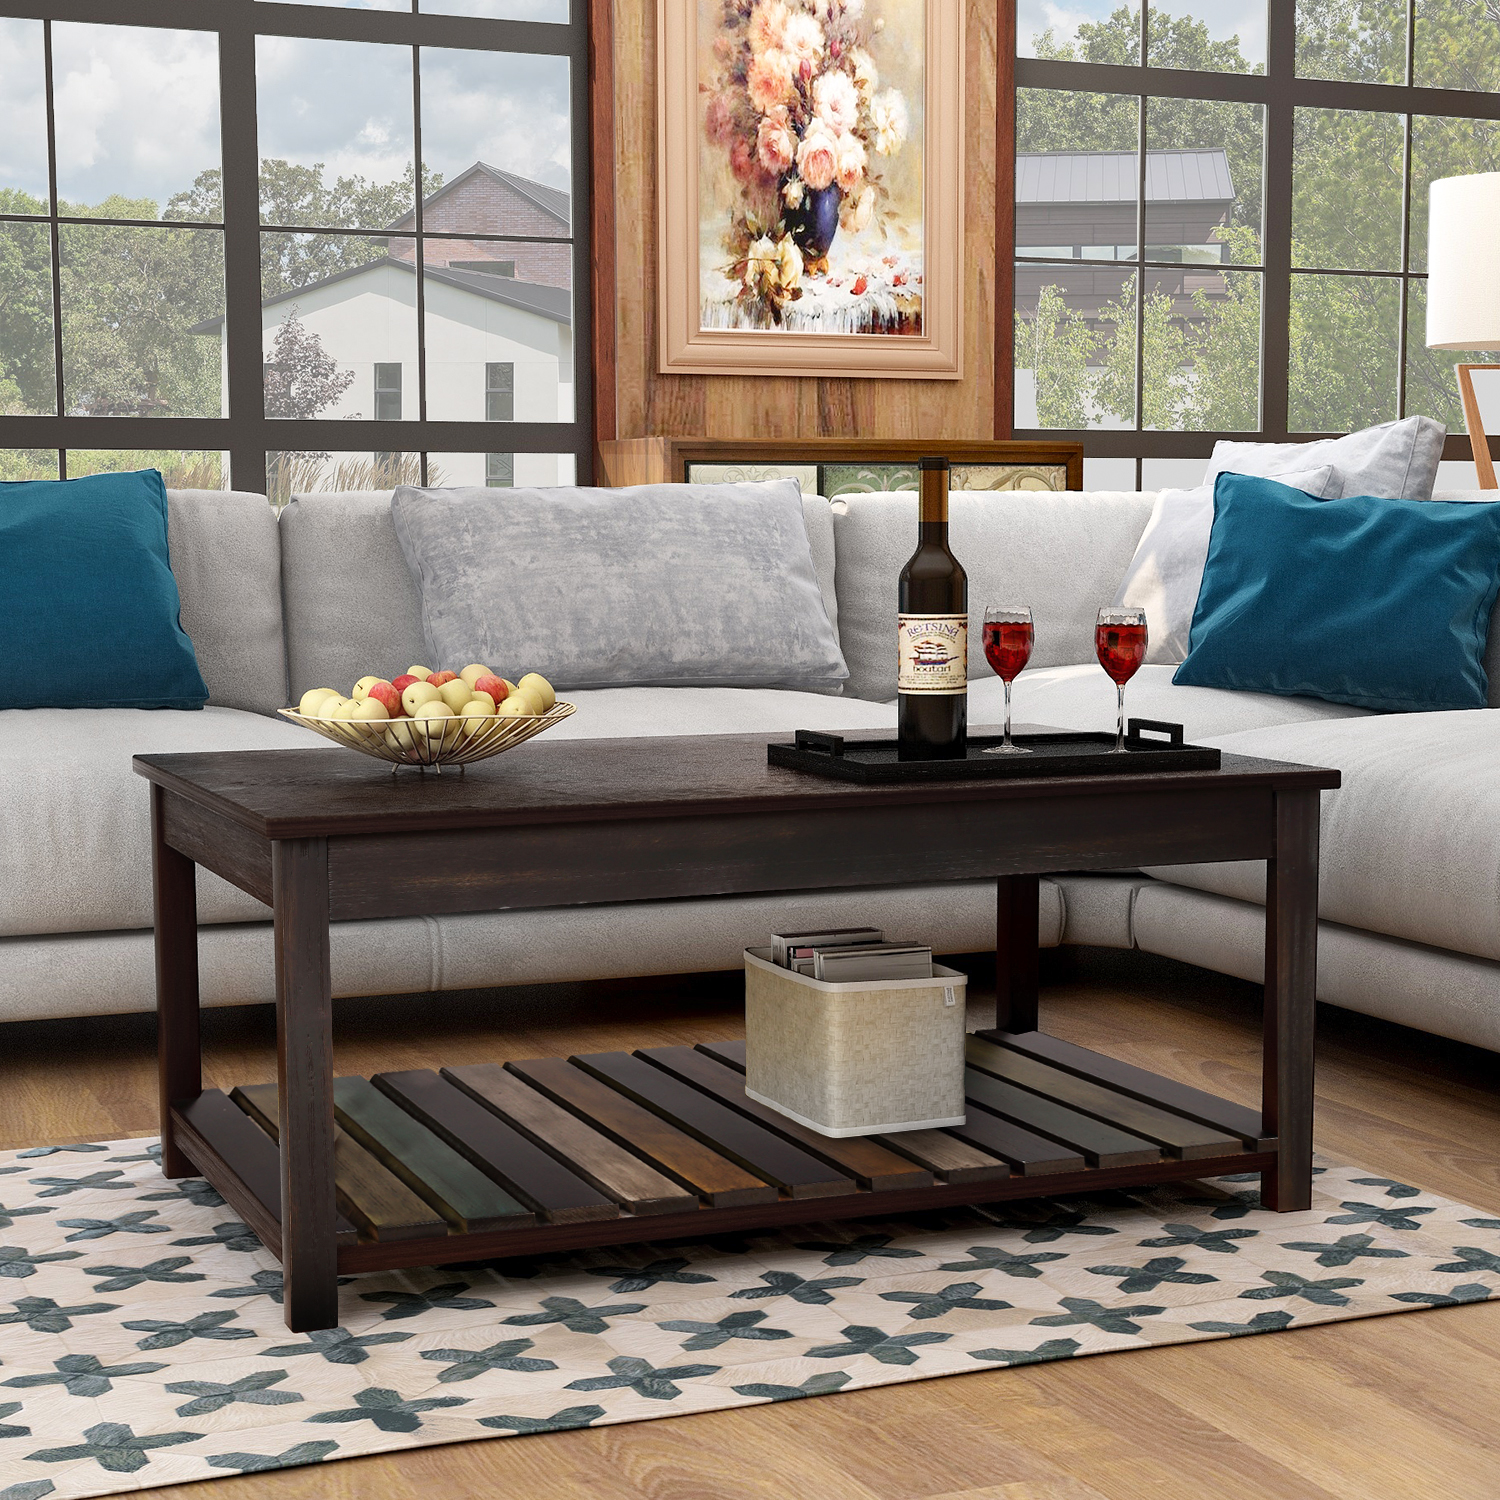 Wooden Wood Top Coffee Table For Living Room Segmart 43 X 37 X 18 Simple Design Coffee Table W Spacious Lower Shelf For Storing Coffee Table Books Magazines Furniture Decor 140lbs S13999